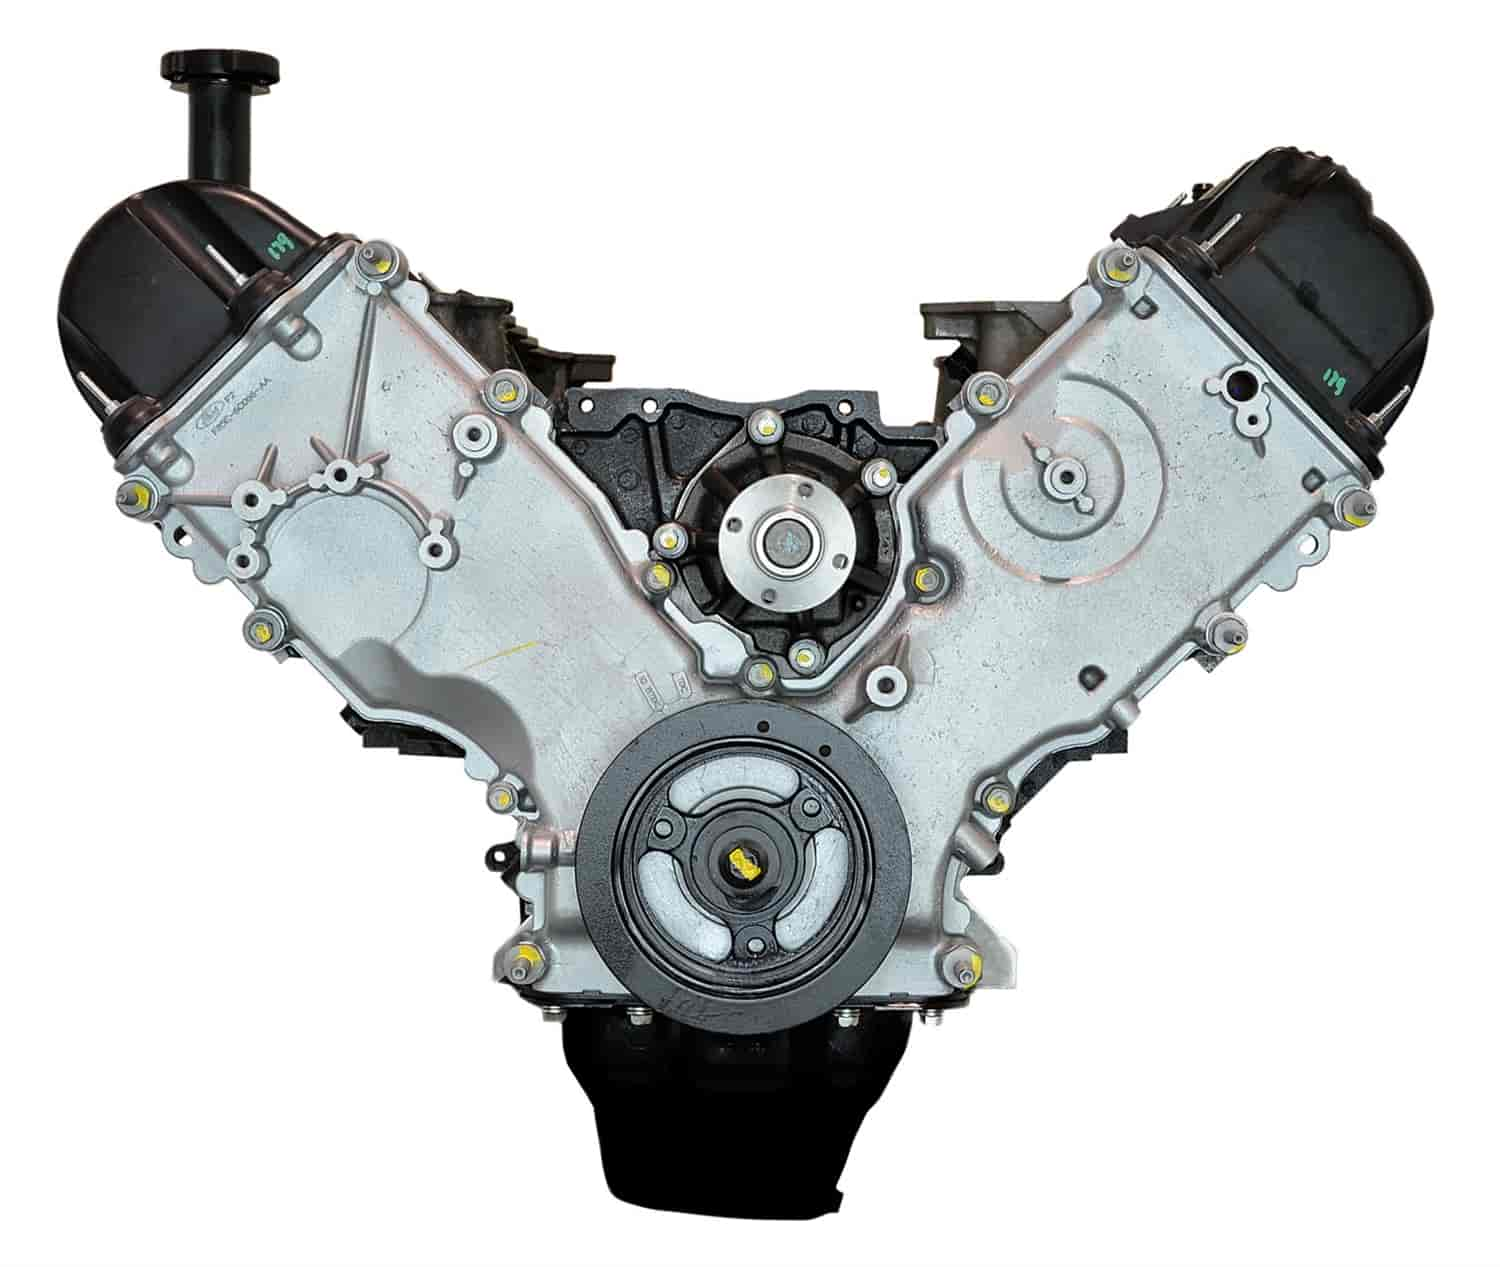 ATK Engines Remanufactured Crate Engine for 1999 Ford F-Series Truck with  6 8L V10